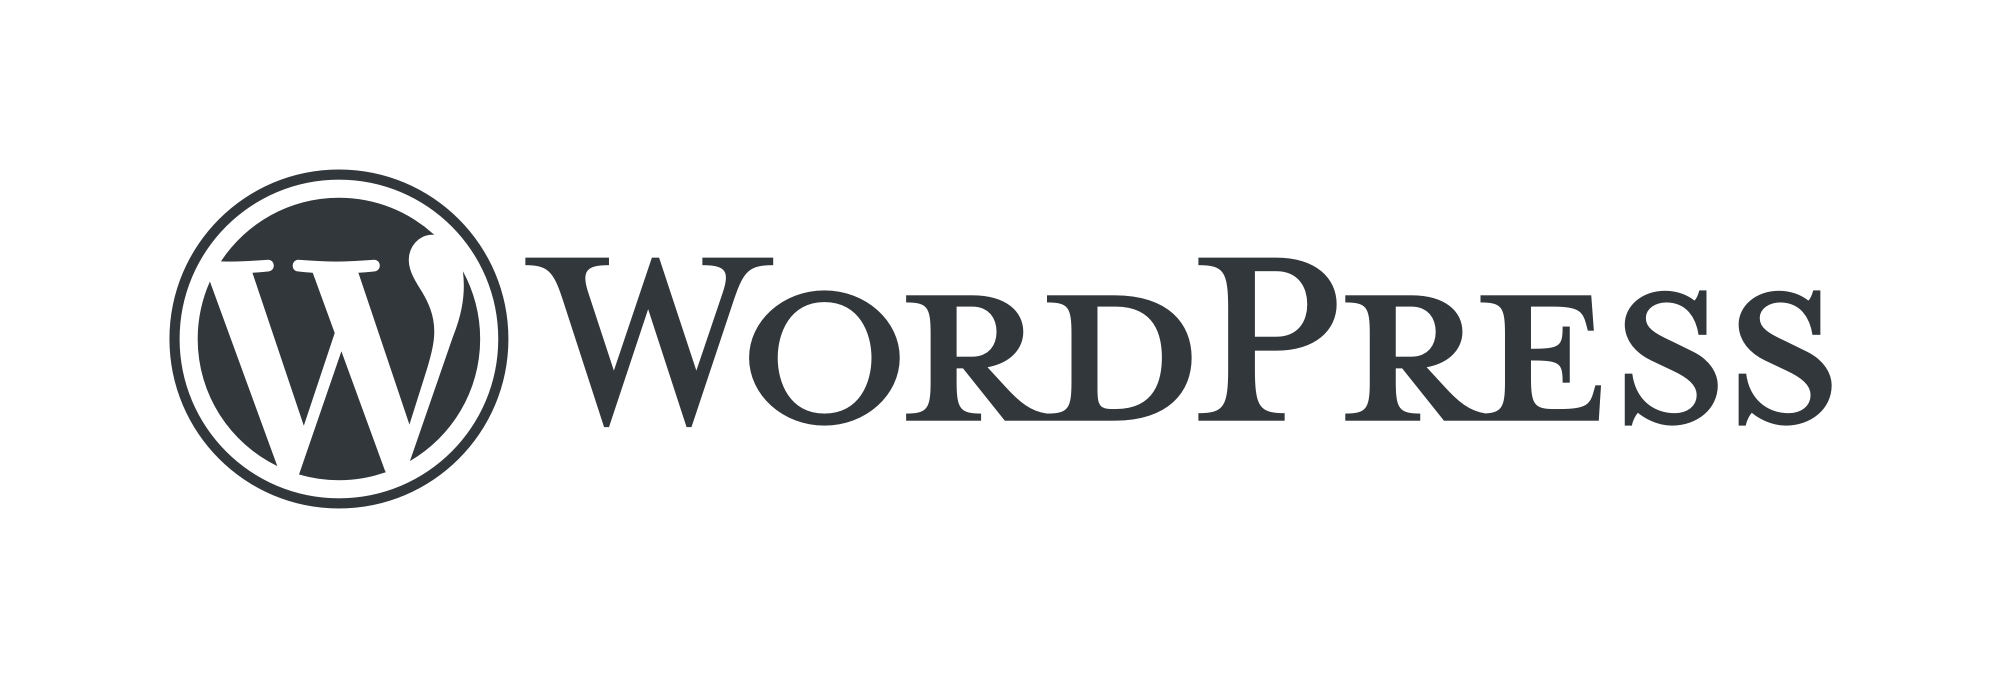 WordPress-logotype-standard_1